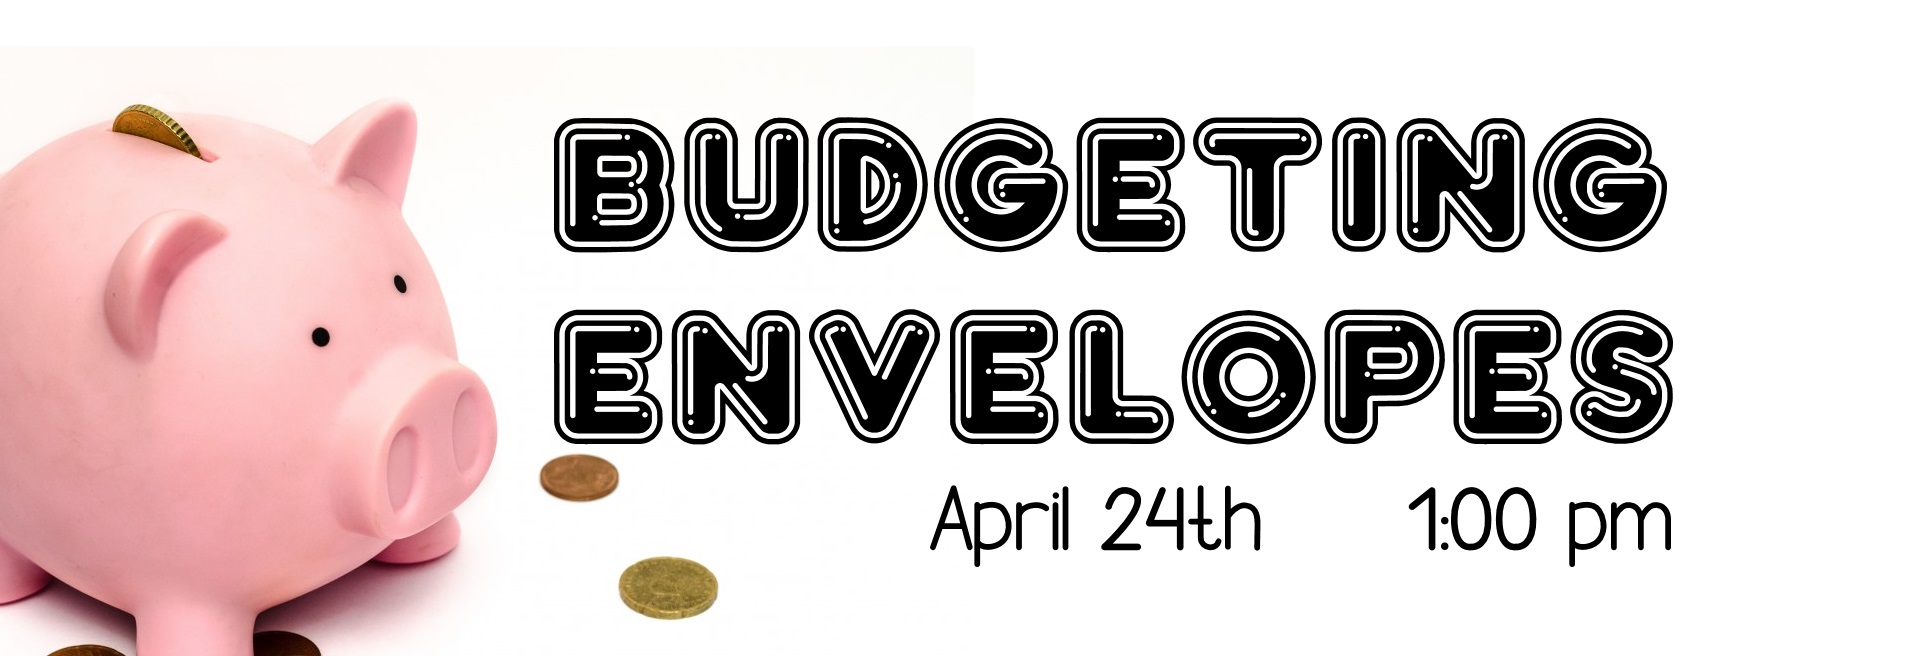 budget envelopes april 24th